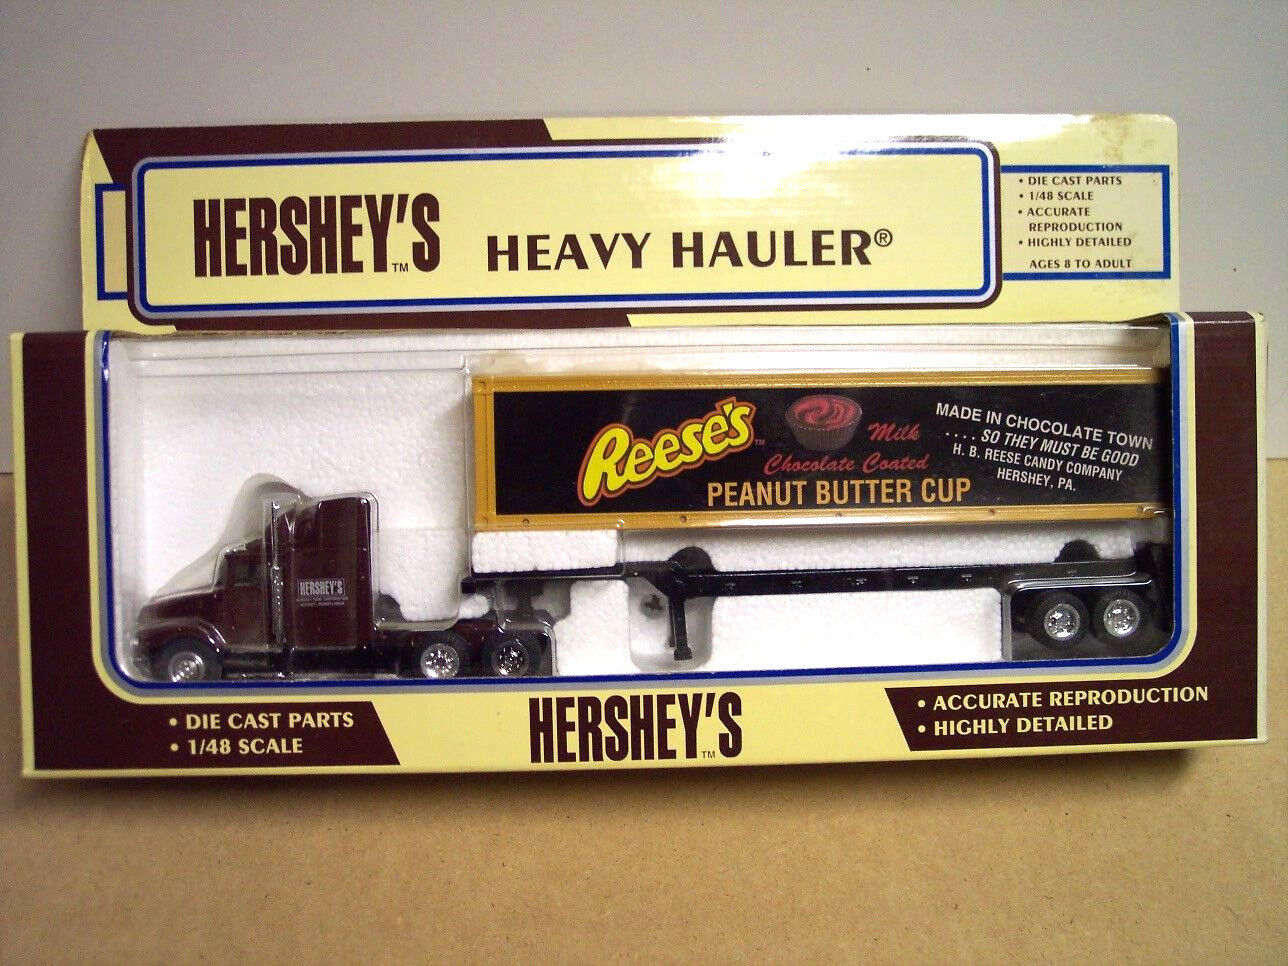 Hershey's Peanut Butter Cup Tractor Trailer 1 48 Scale Die Cast. Special Offer